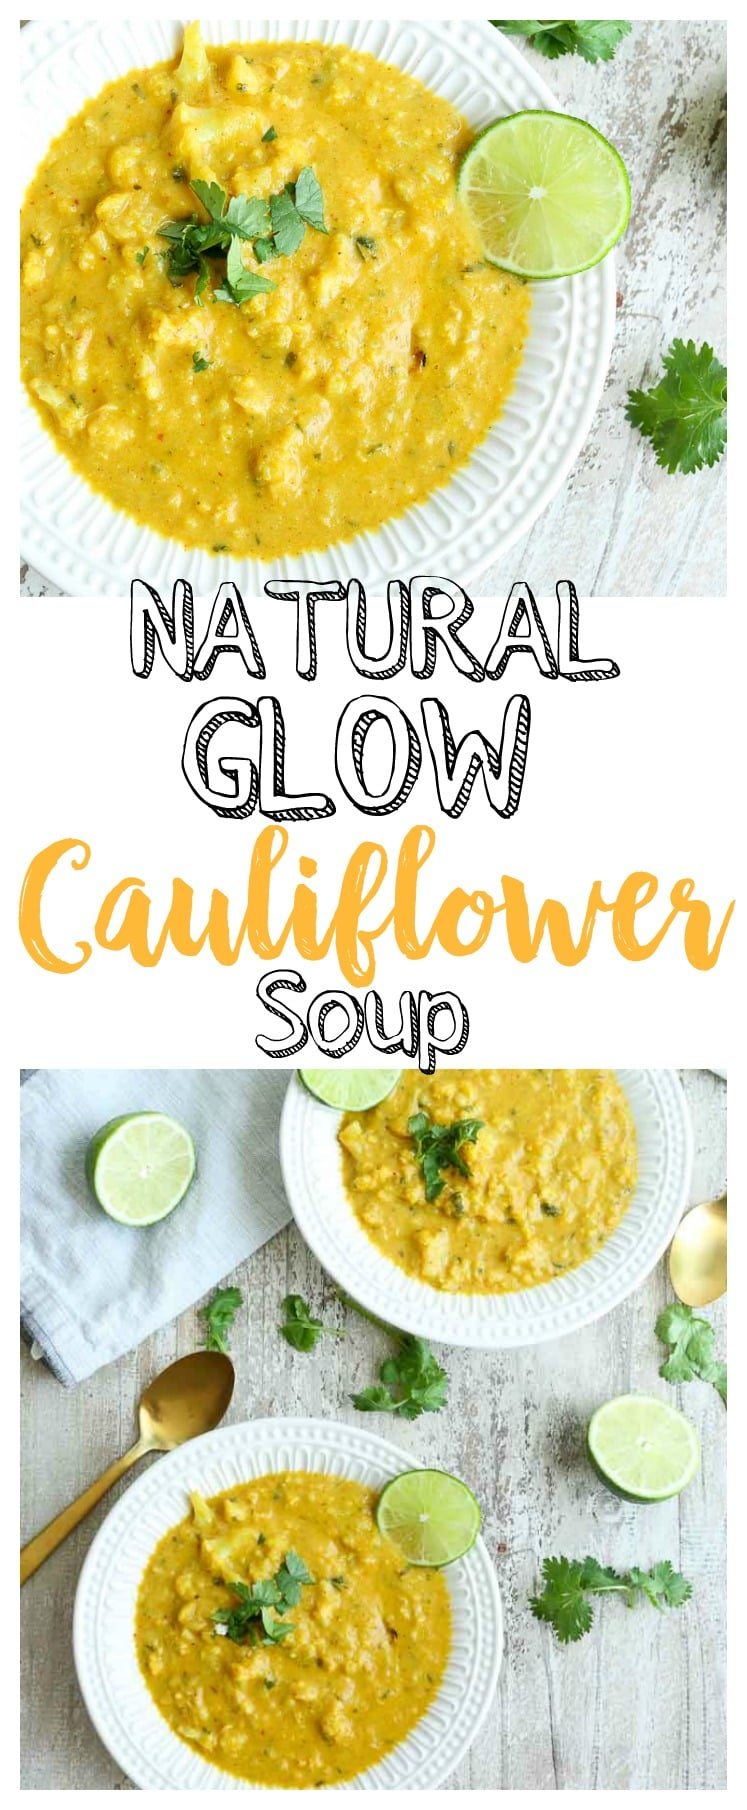 Cauliflower soup | gluten-free | vegan friendly | Paleo | healthy recipe